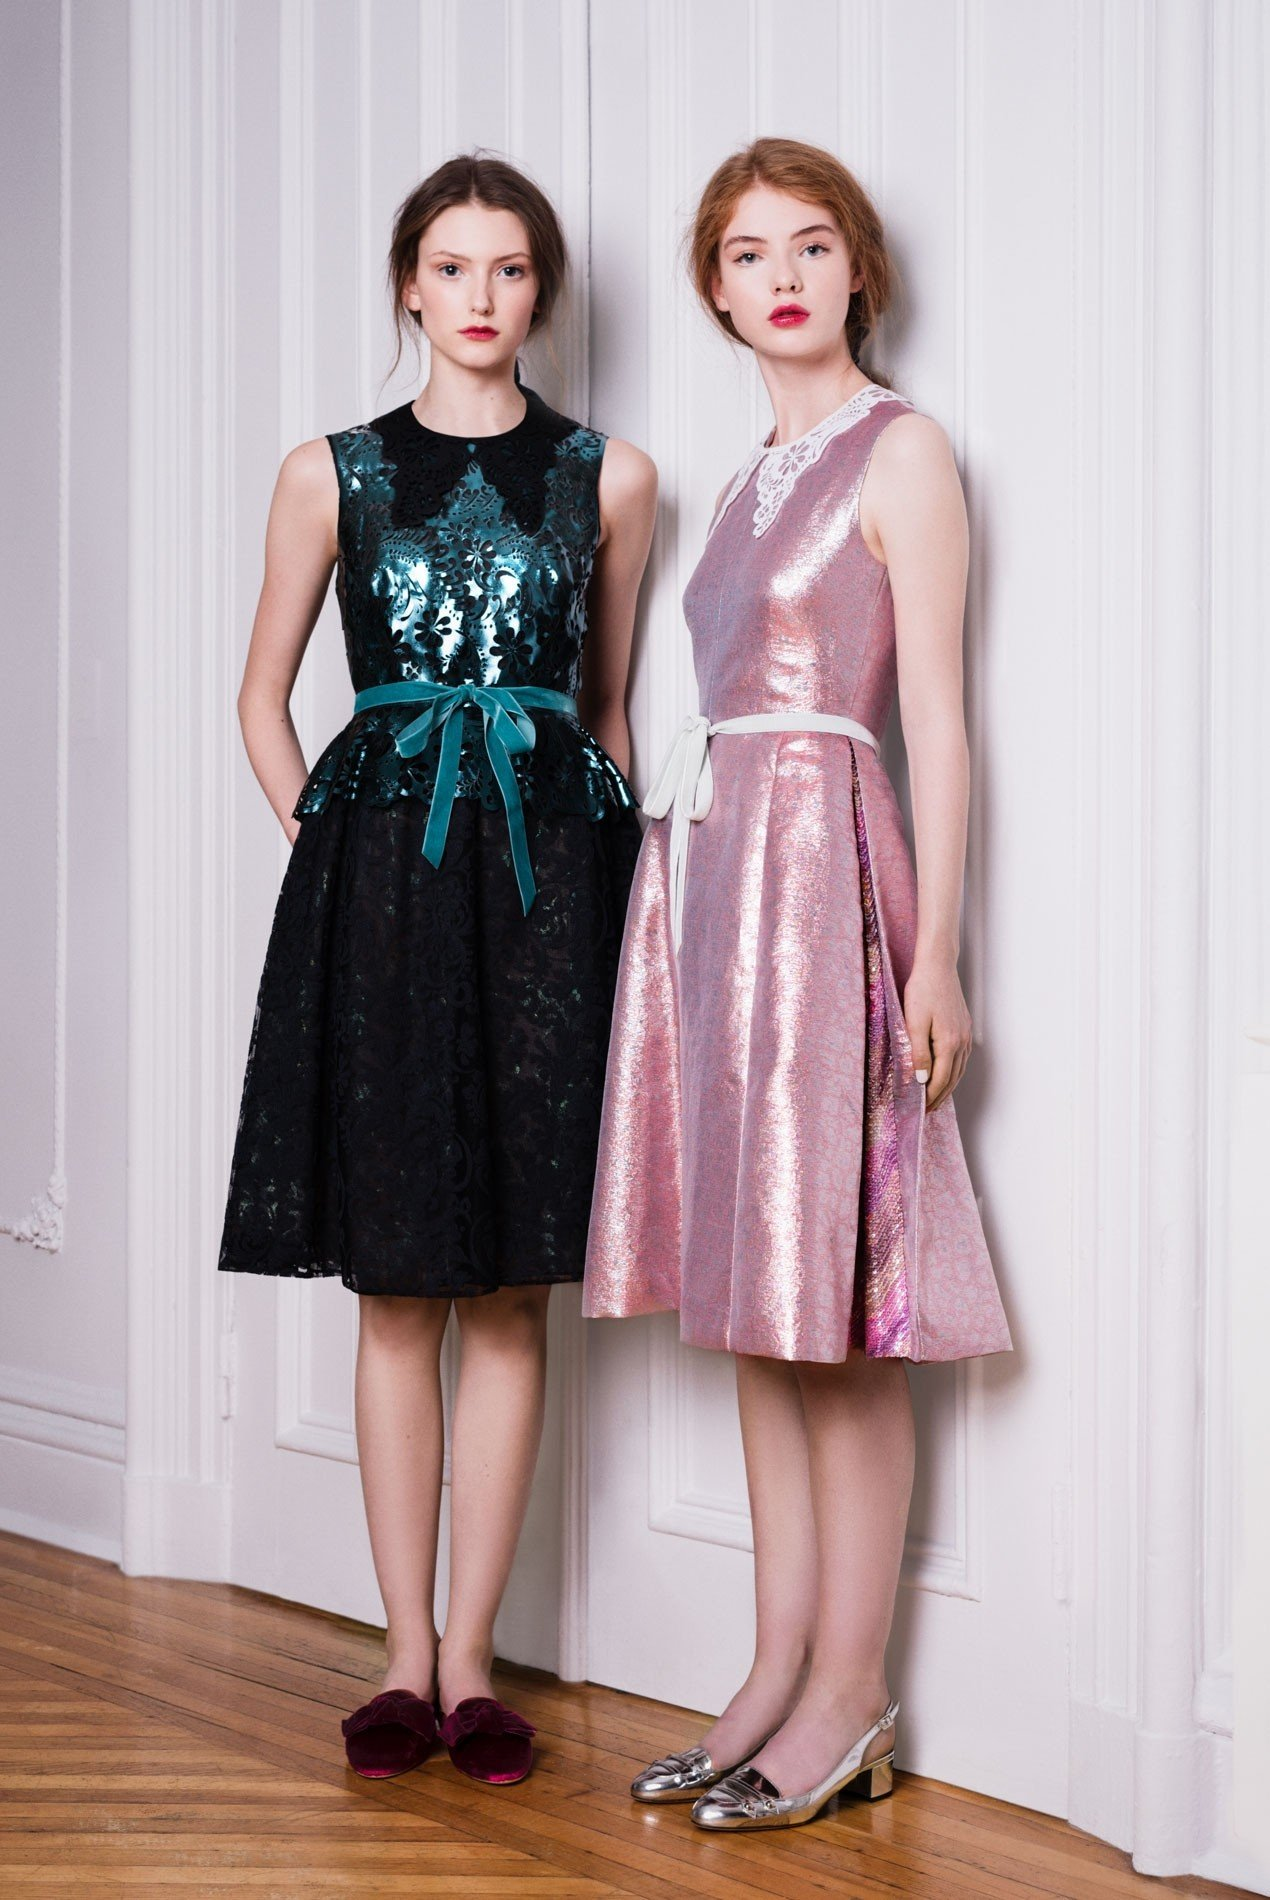 Left: Laser cut leather peplum top | Right: Lamé jacquard dress with chevron sequin inserts